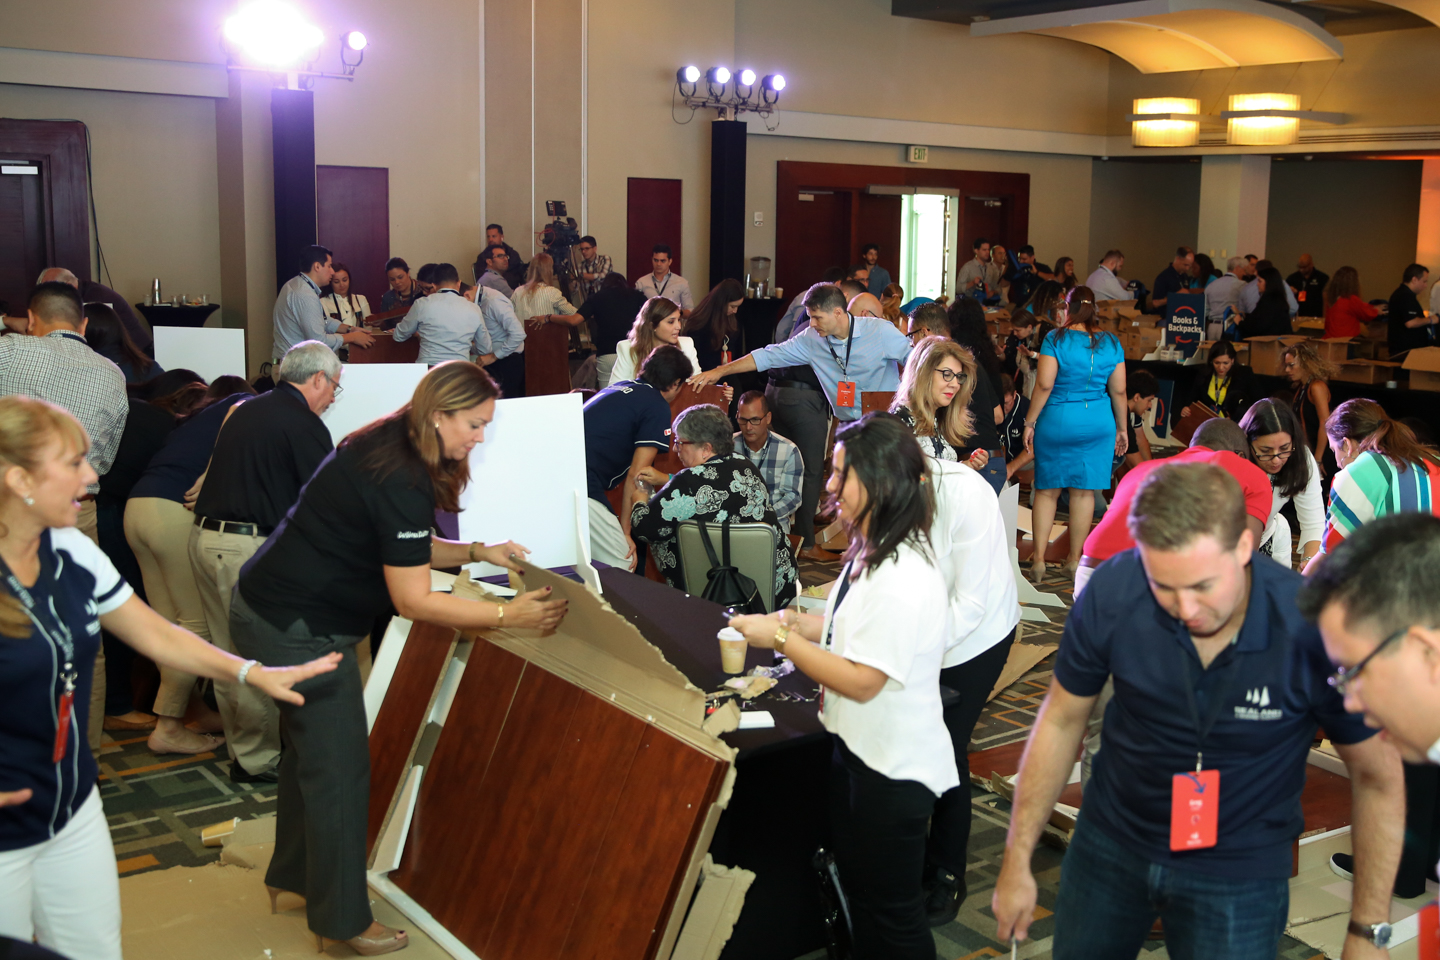 Professional-Event-Photography-Orlando-Sealand-annual-conference-Puerto-Rico-28.jpg